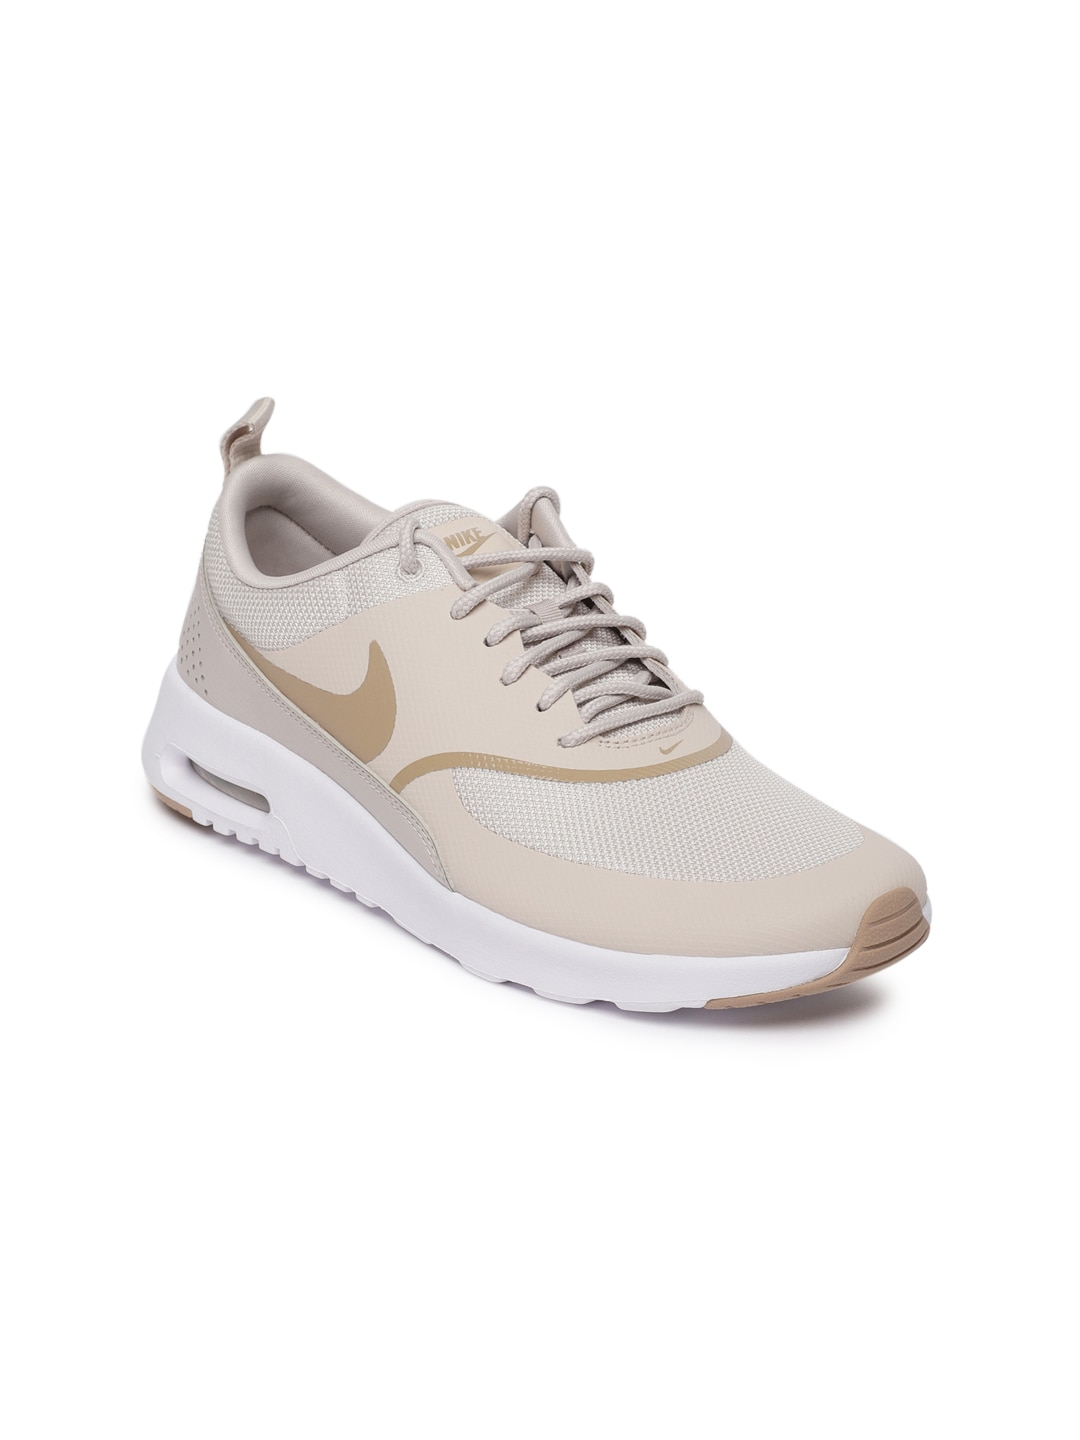 detailed look c84ff 43710 Nike Casual Shoes   Buy Nike Casual Shoes for Men   Women Online in India